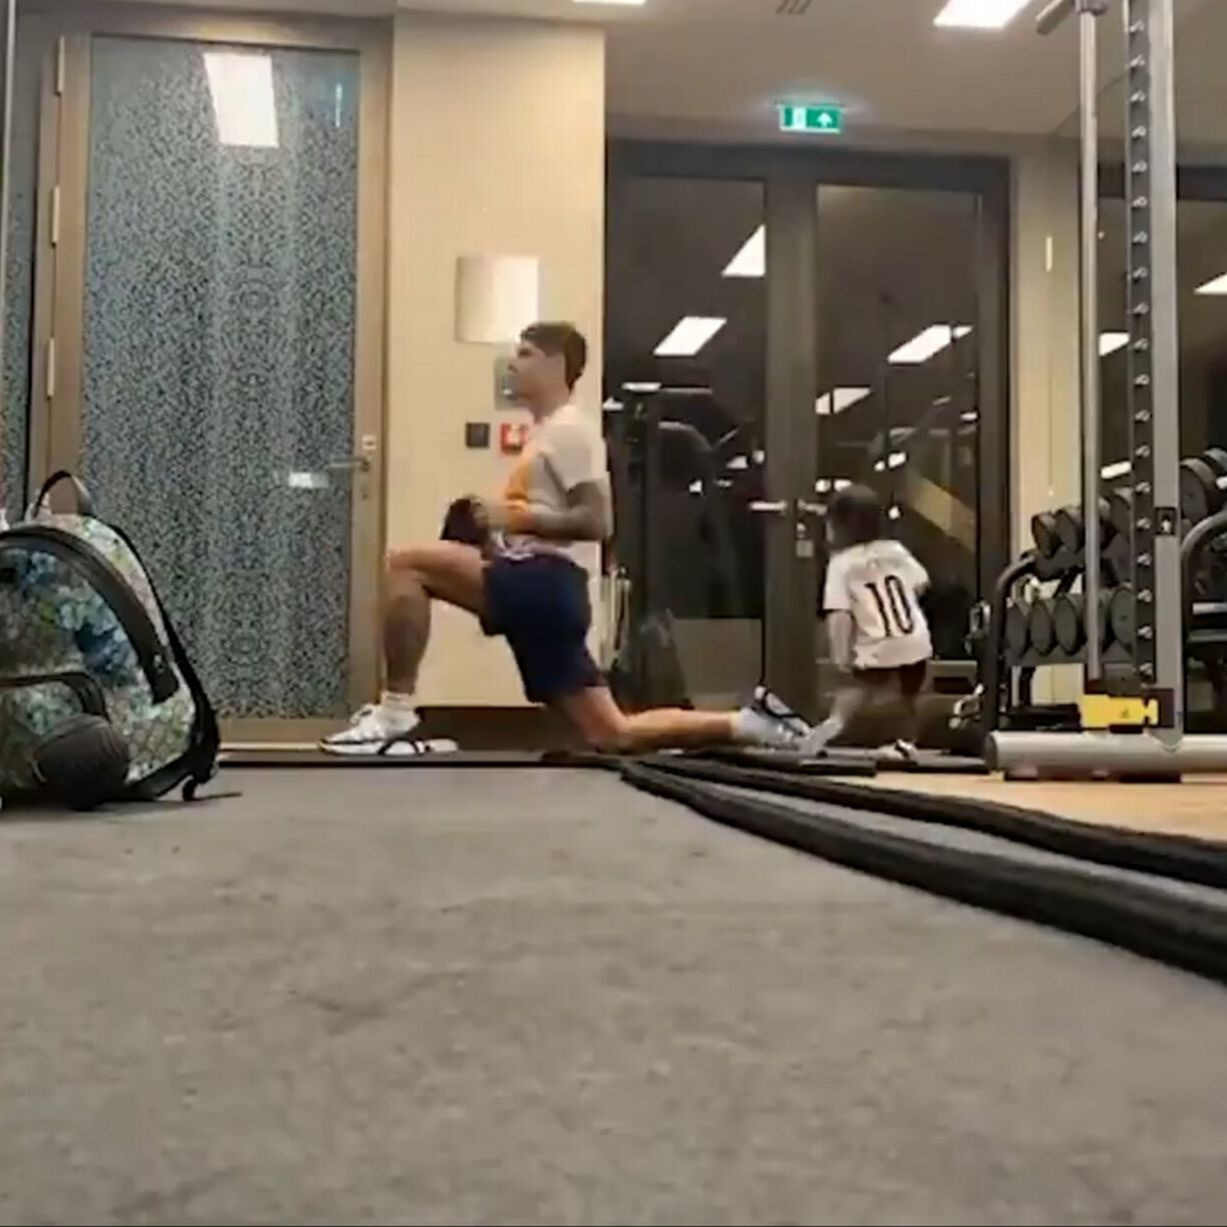 Erik Lamela working out at home